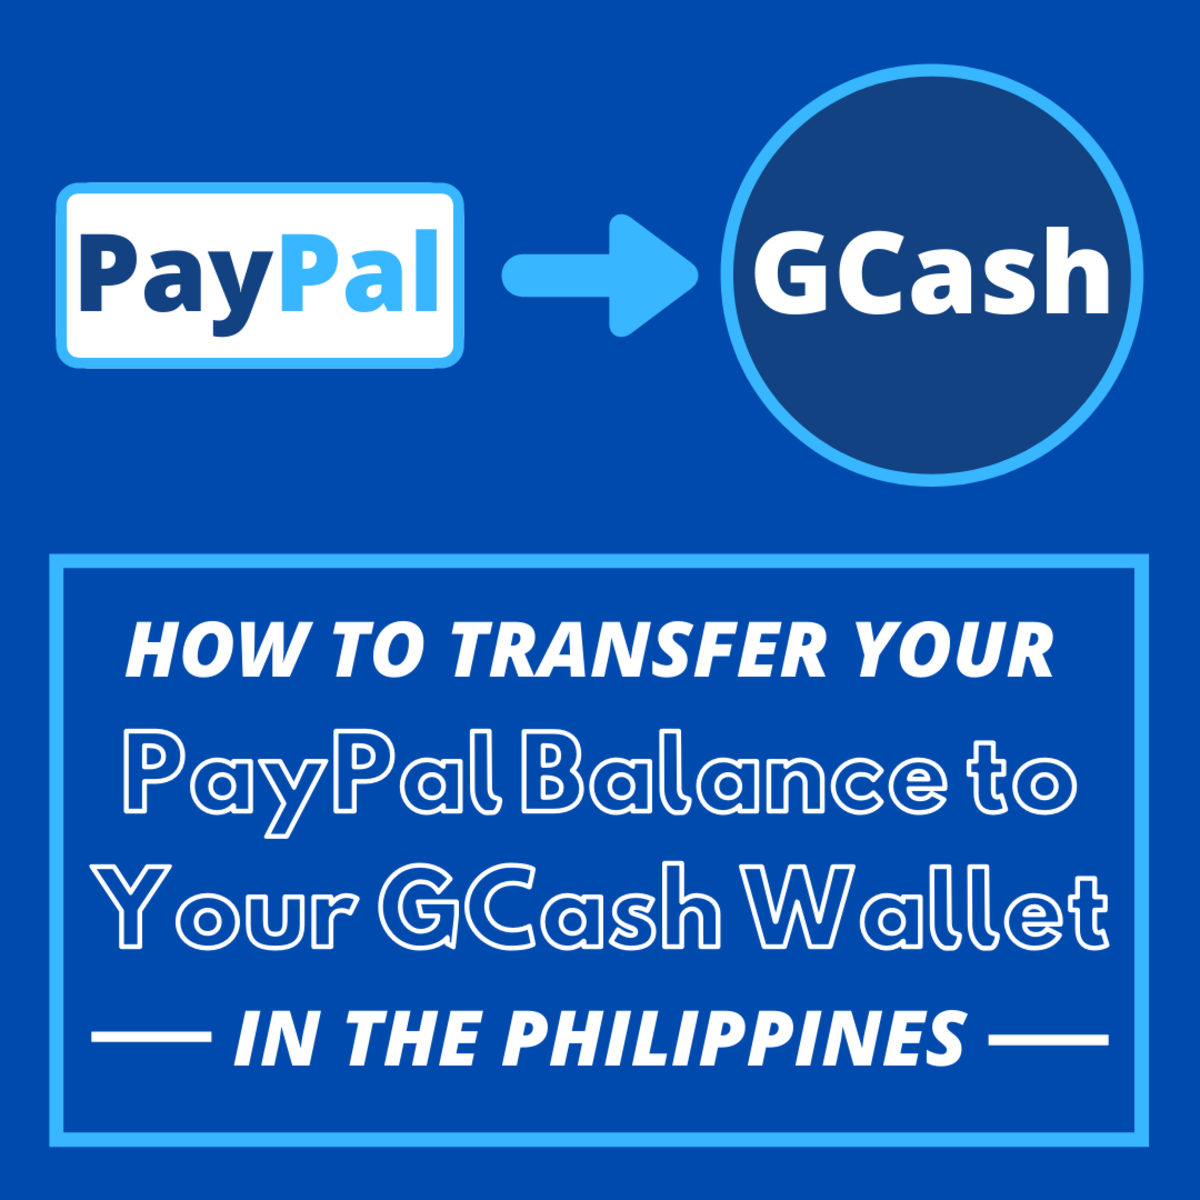 How to Transfer a PayPal Balance to GCash in the Philippines